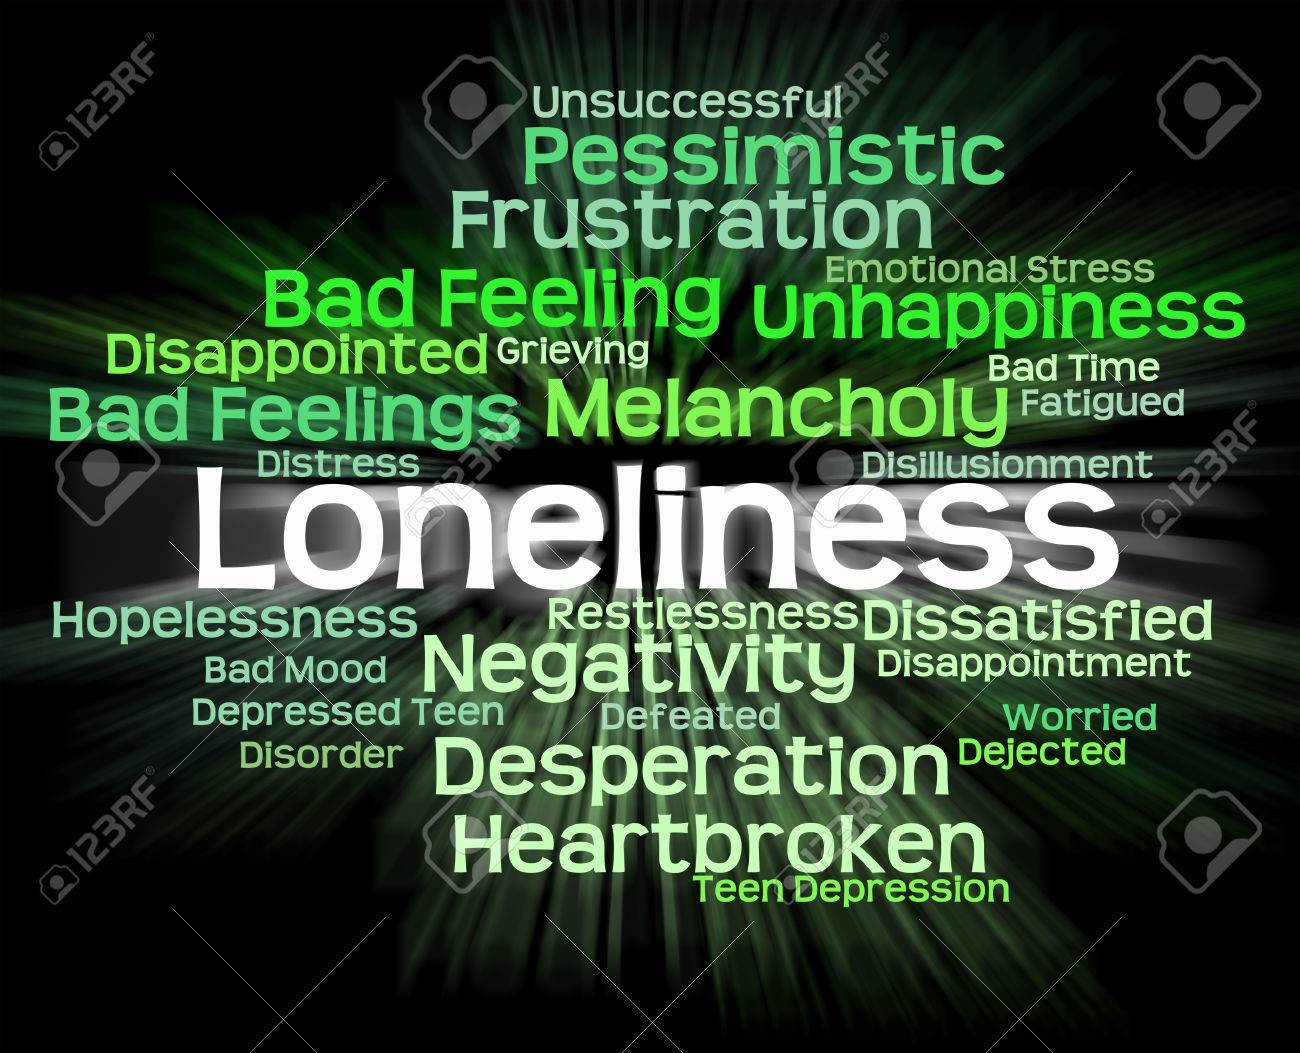 Dealing with loneliness and rejection